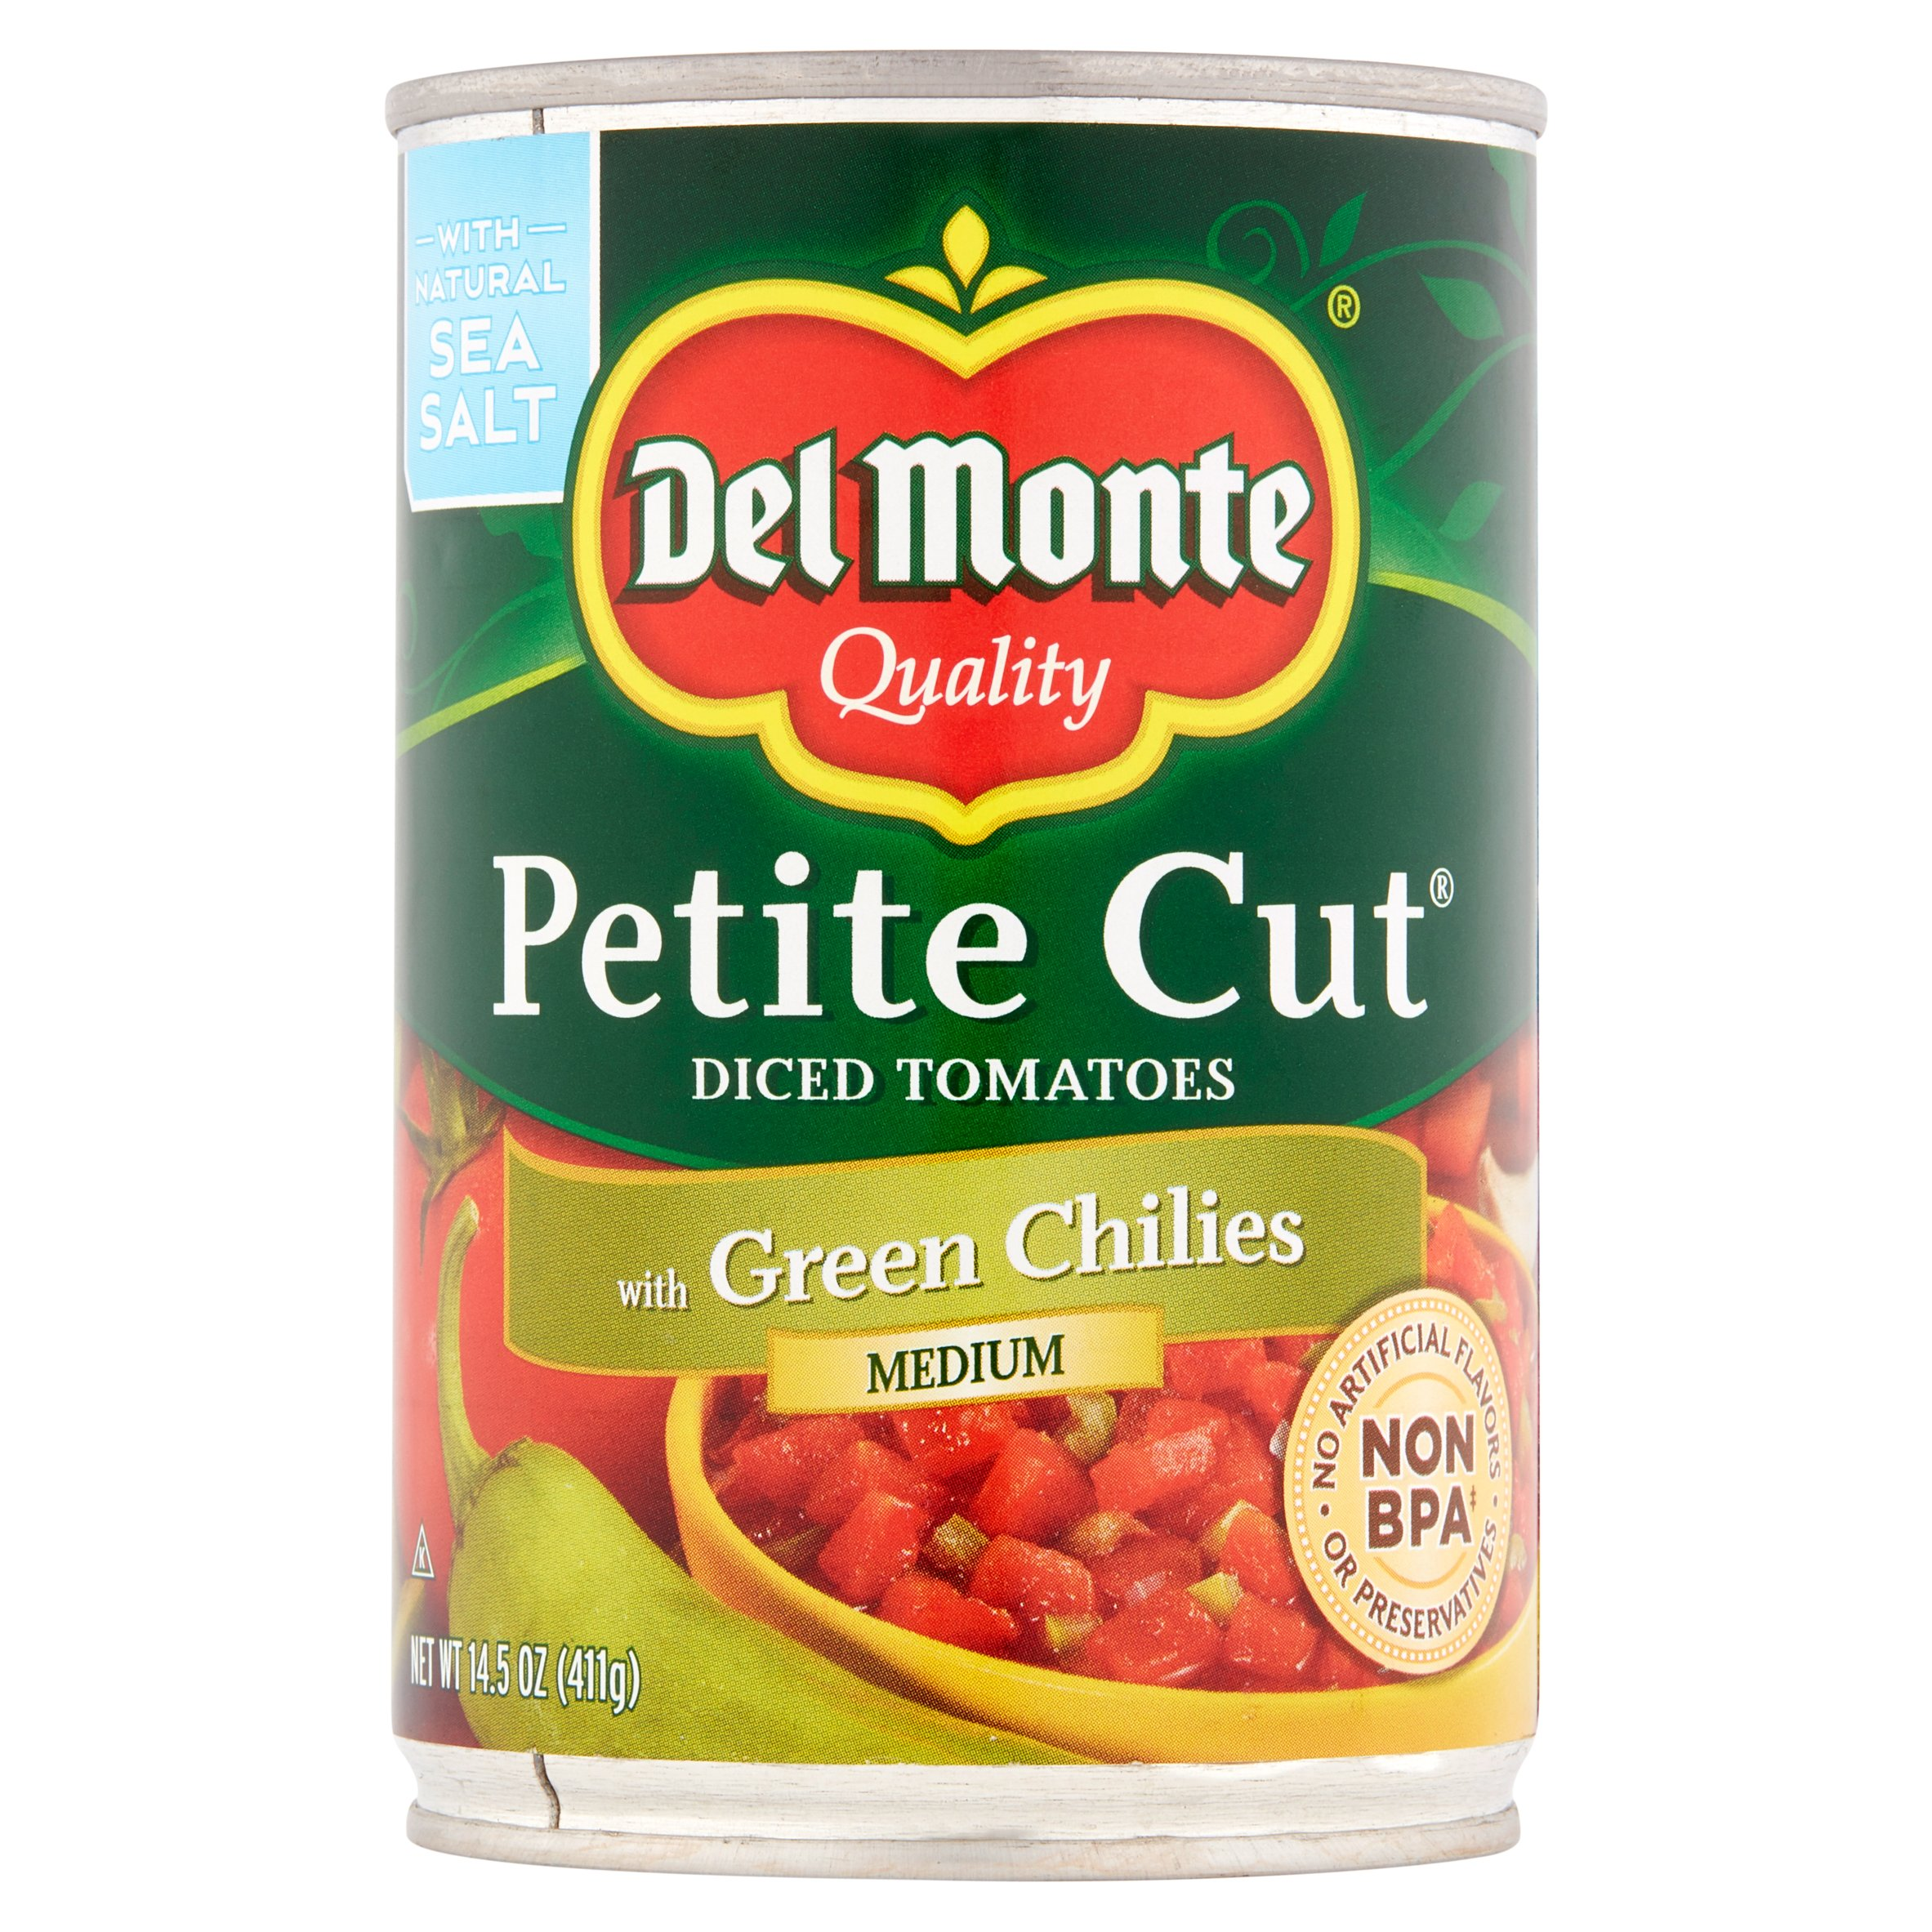 Del Monte Petite Cut Medium Diced Tomatoes with Green Chilies, 14.5 oz